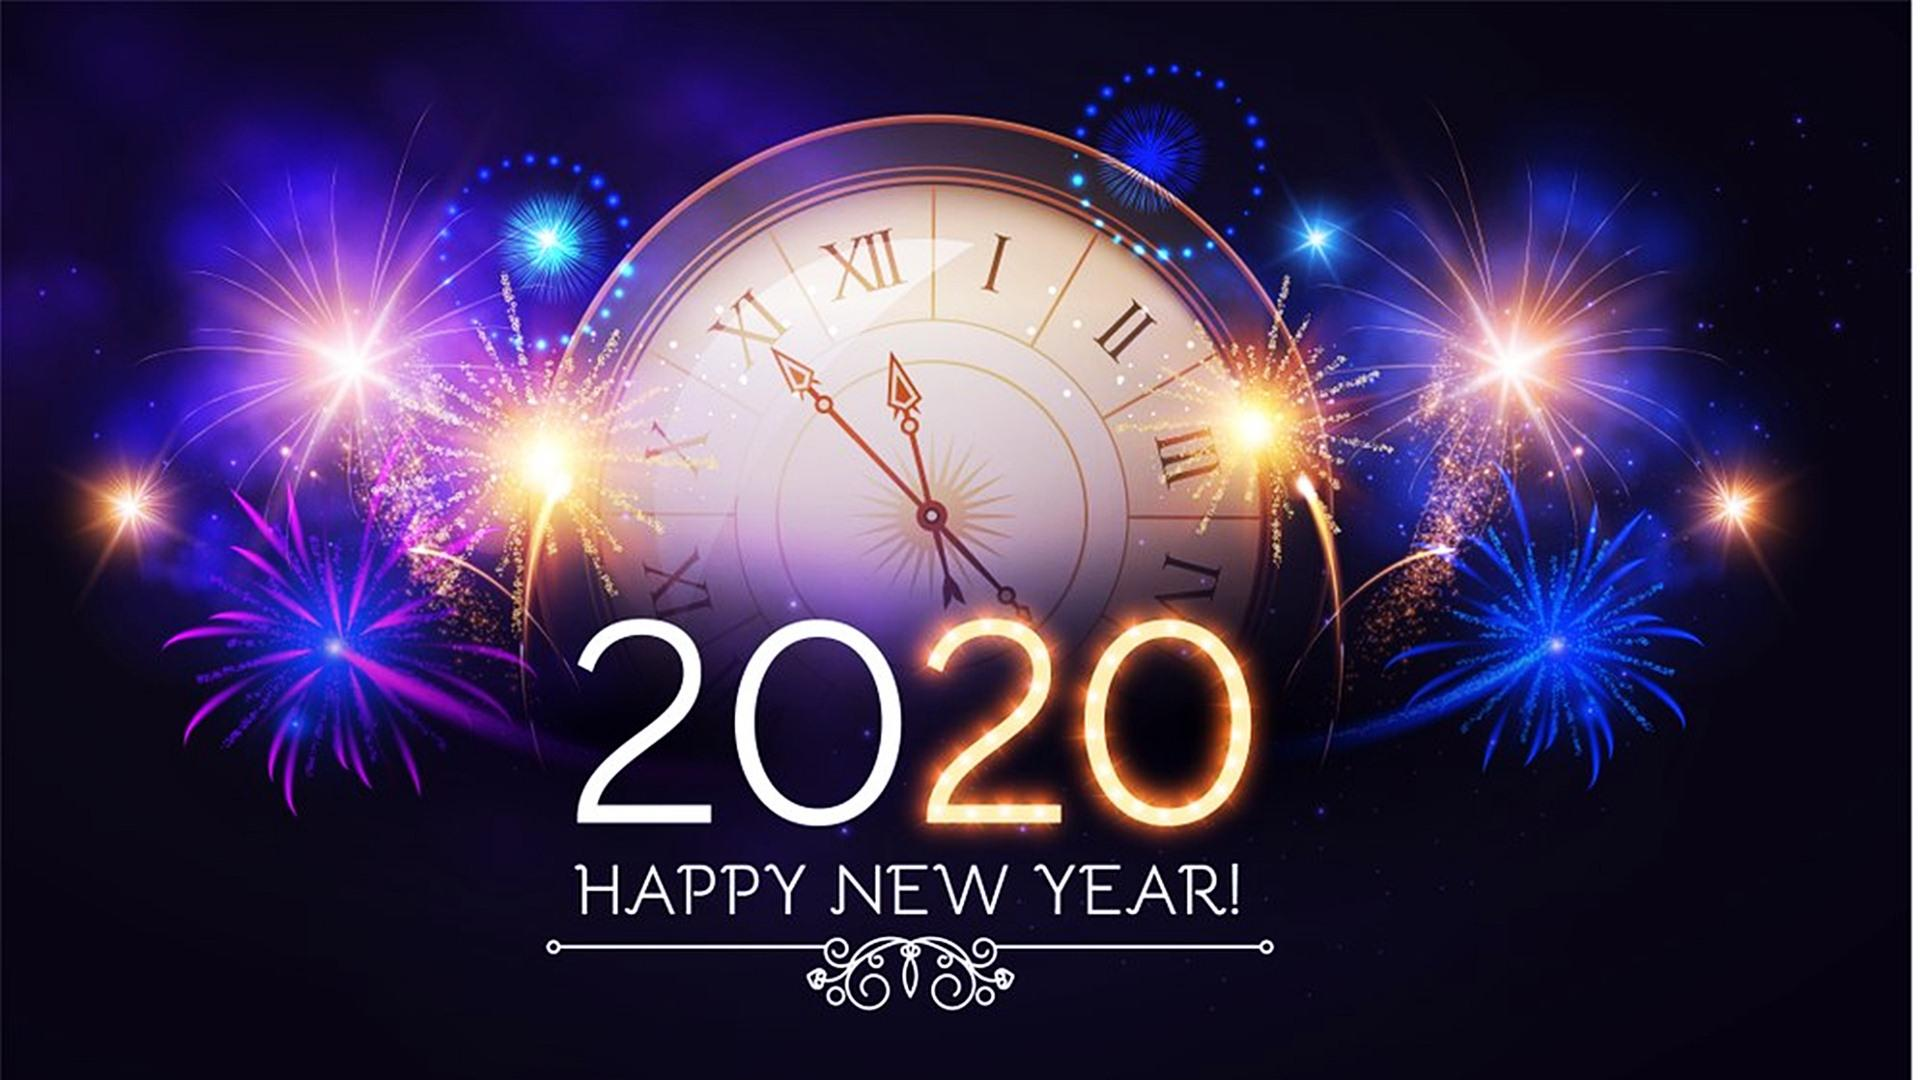 Happy New Year 2020 High Definition Wallpapers 45552